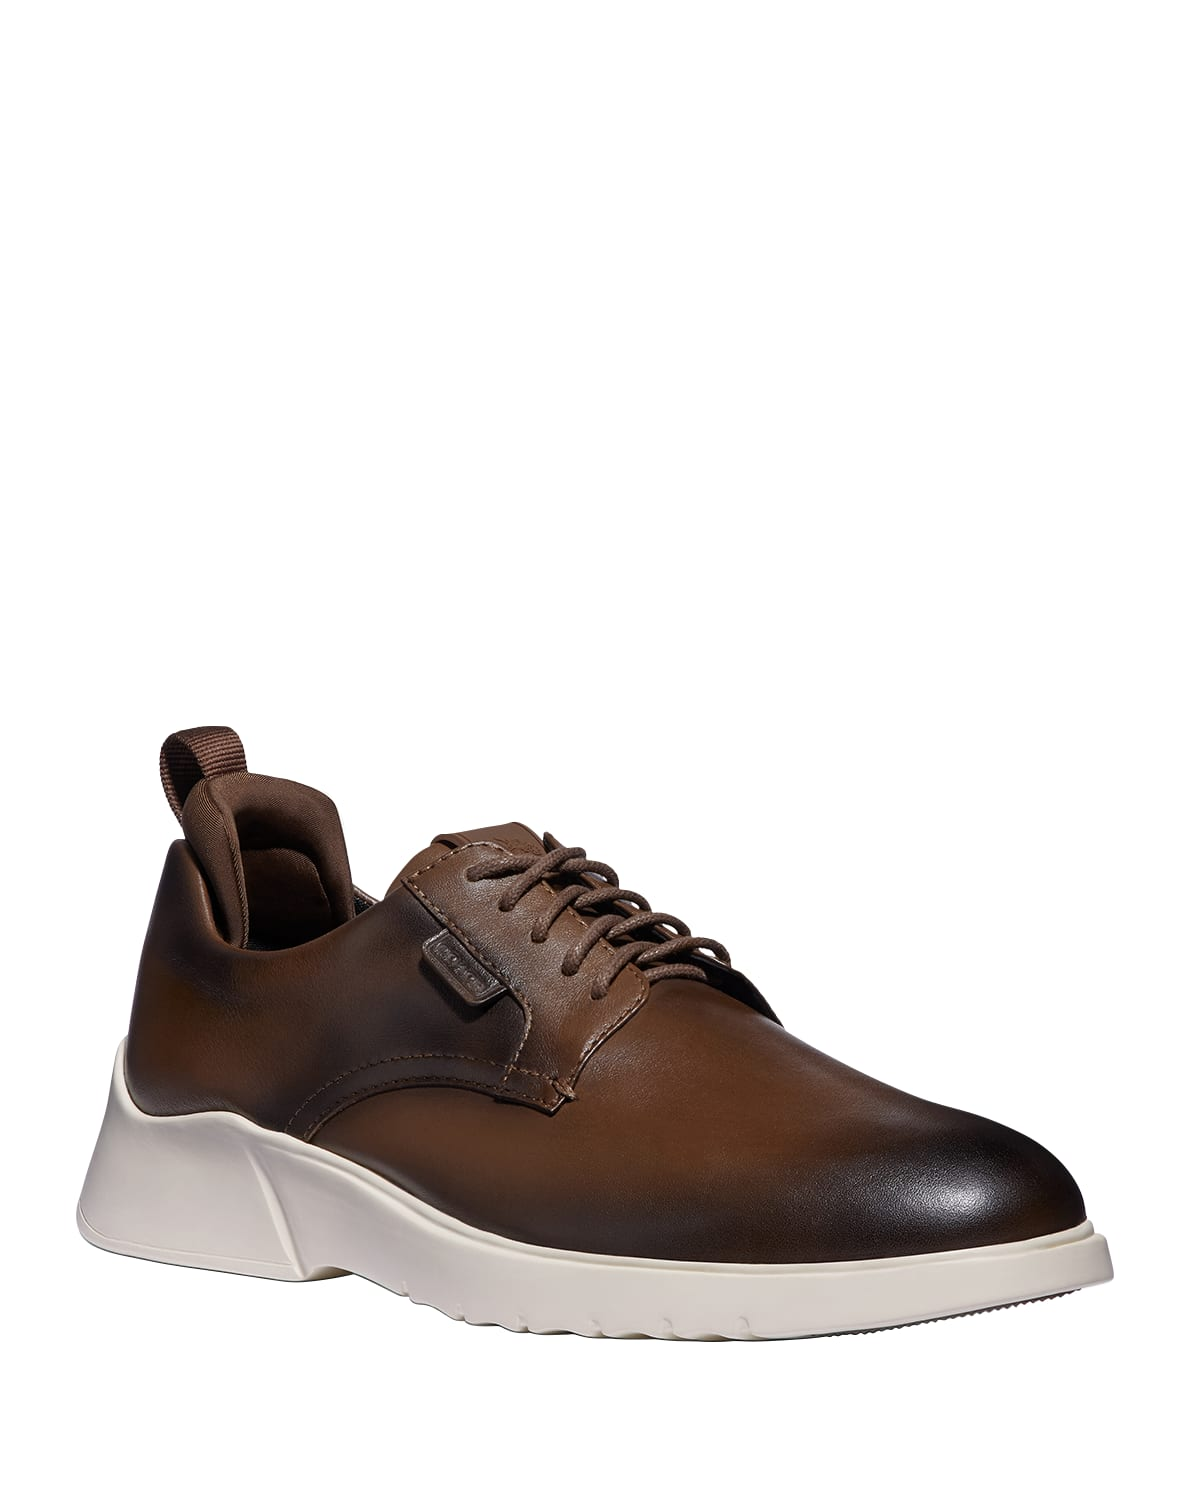 Men's CitySole Burnished Leather Derby Sneakers